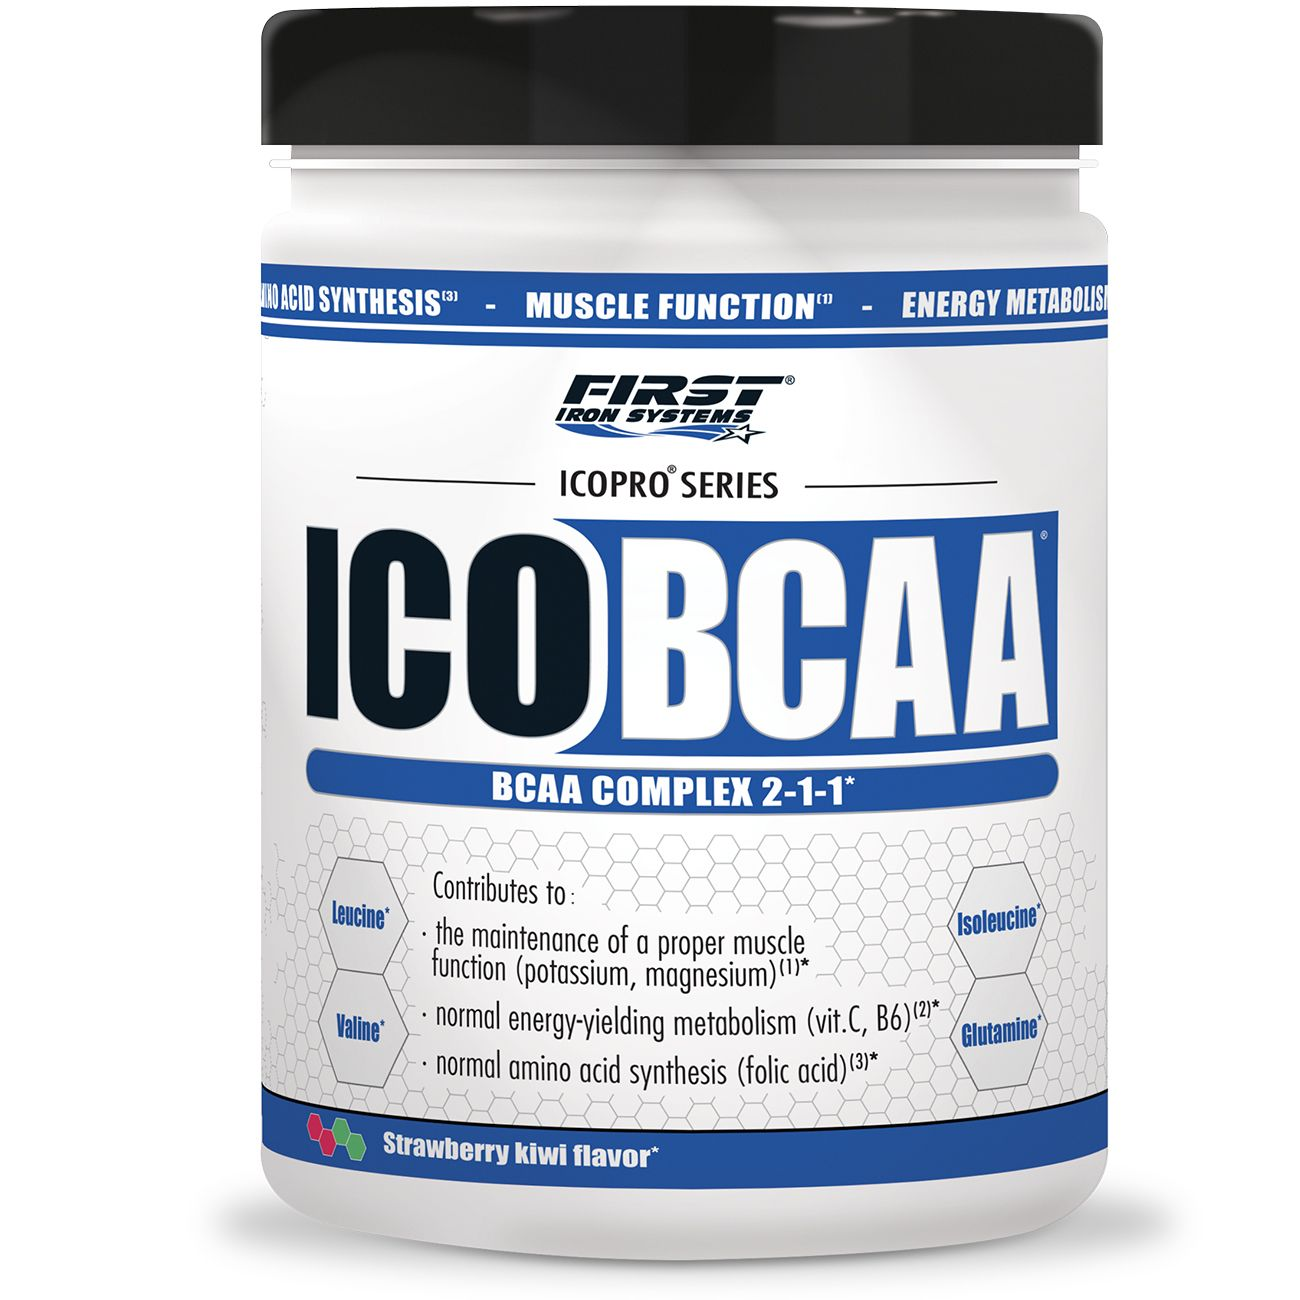 FIRST IRON SYSTEMS ICOBCAA